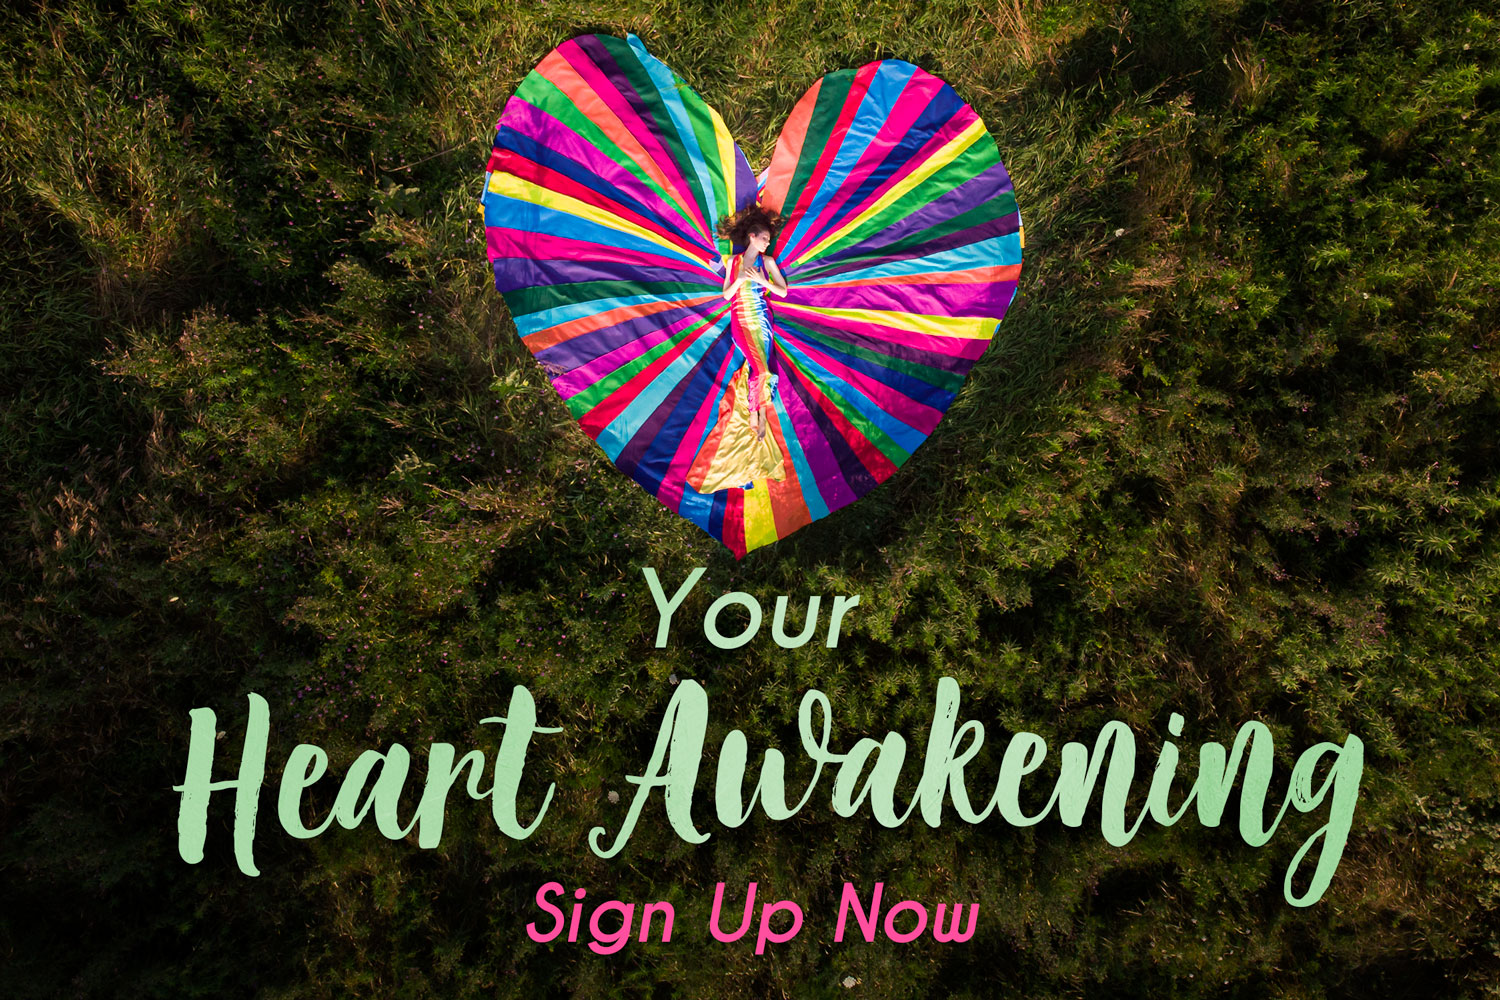 Your Heart Awakening - Sign Up Now